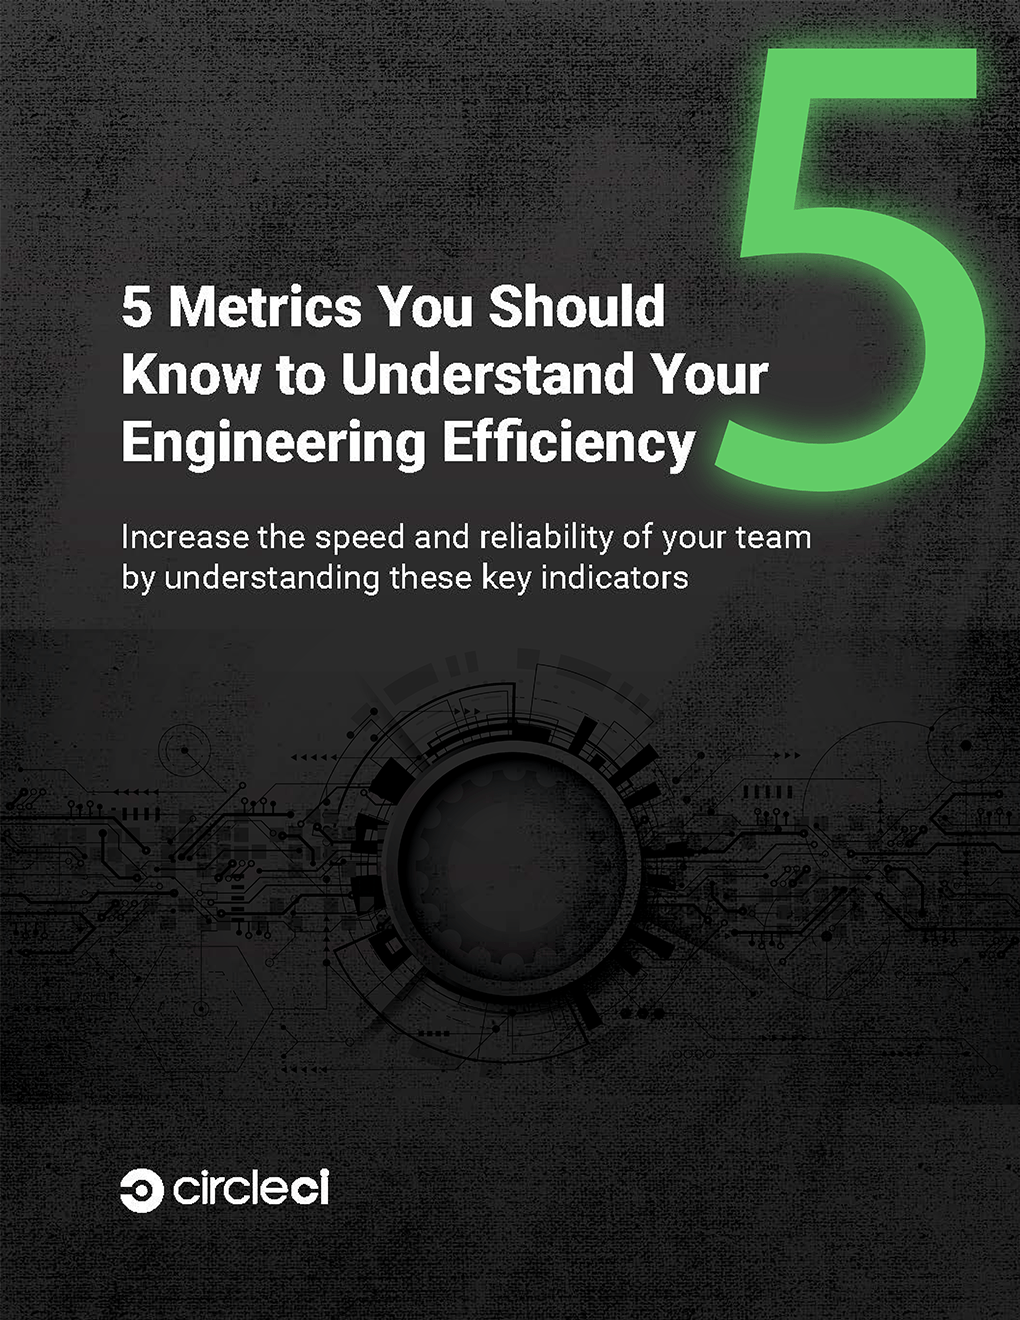 5 Metrics You Should Know to Understand Your Engineering Efficiency